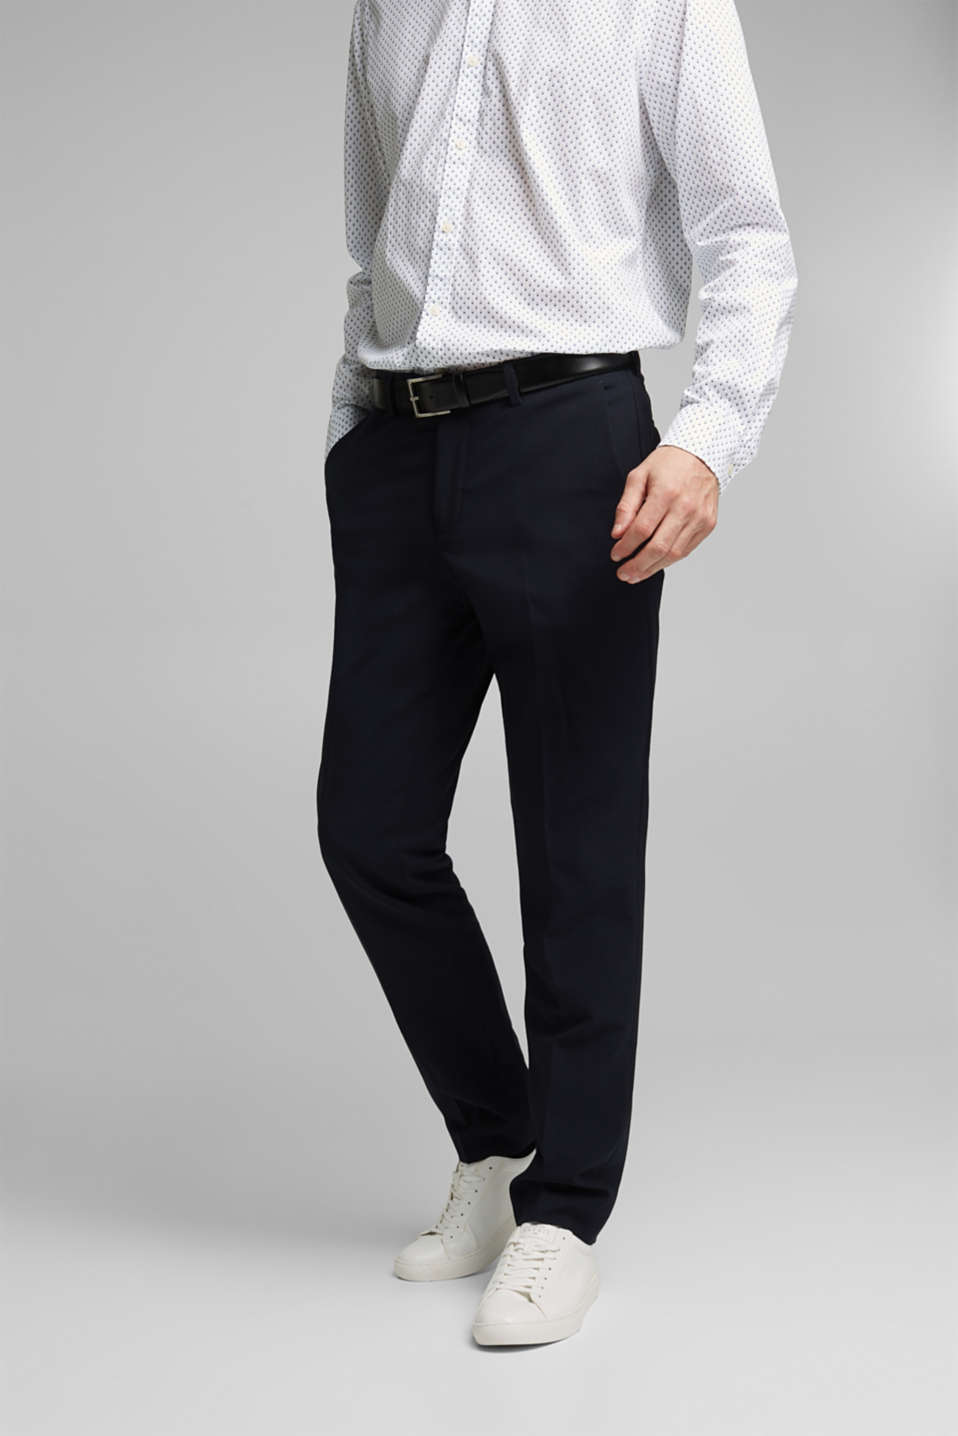 Esprit - ACTIVE SUIT trousers made of blended wool